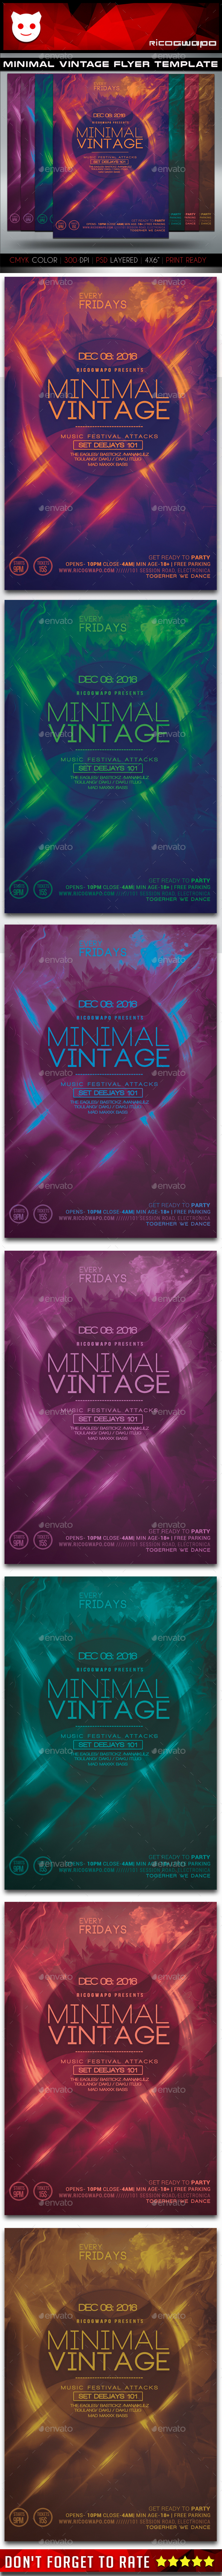 Minimal Vintage Flyer Template - Clubs & Parties Events